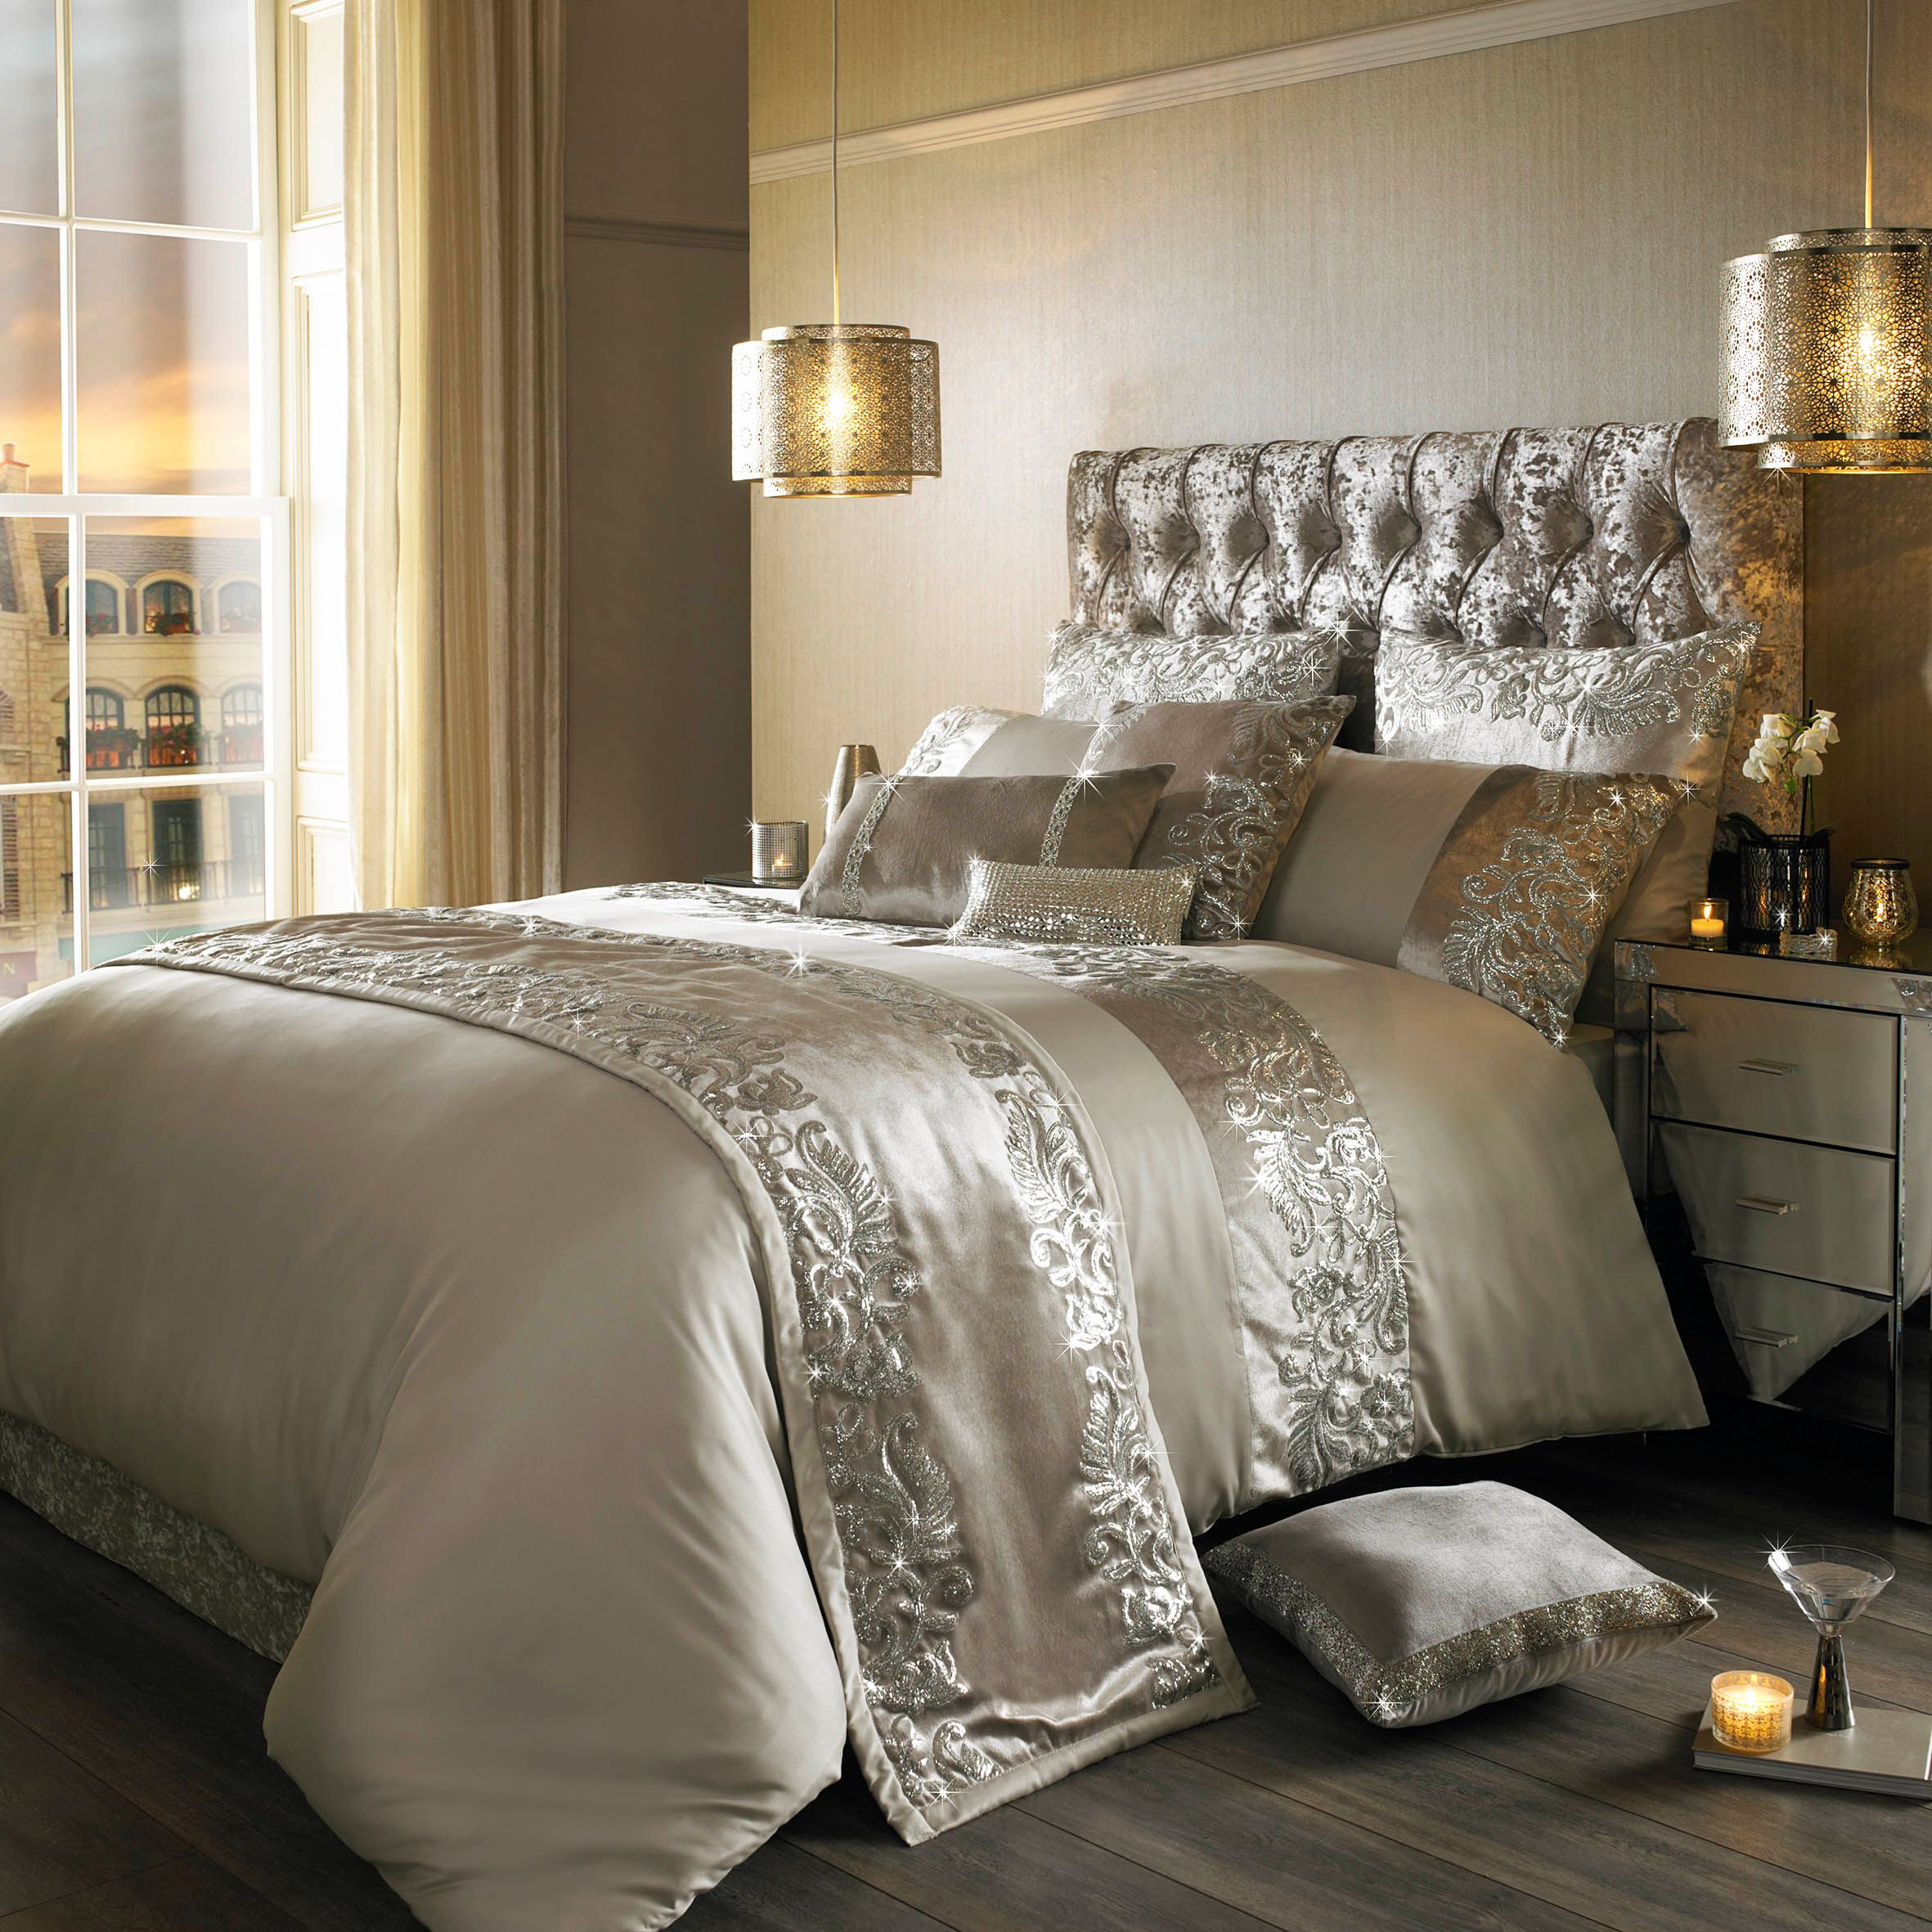 Kylie minogue scroll praline duvet cover bluewater for Living room quilt cover